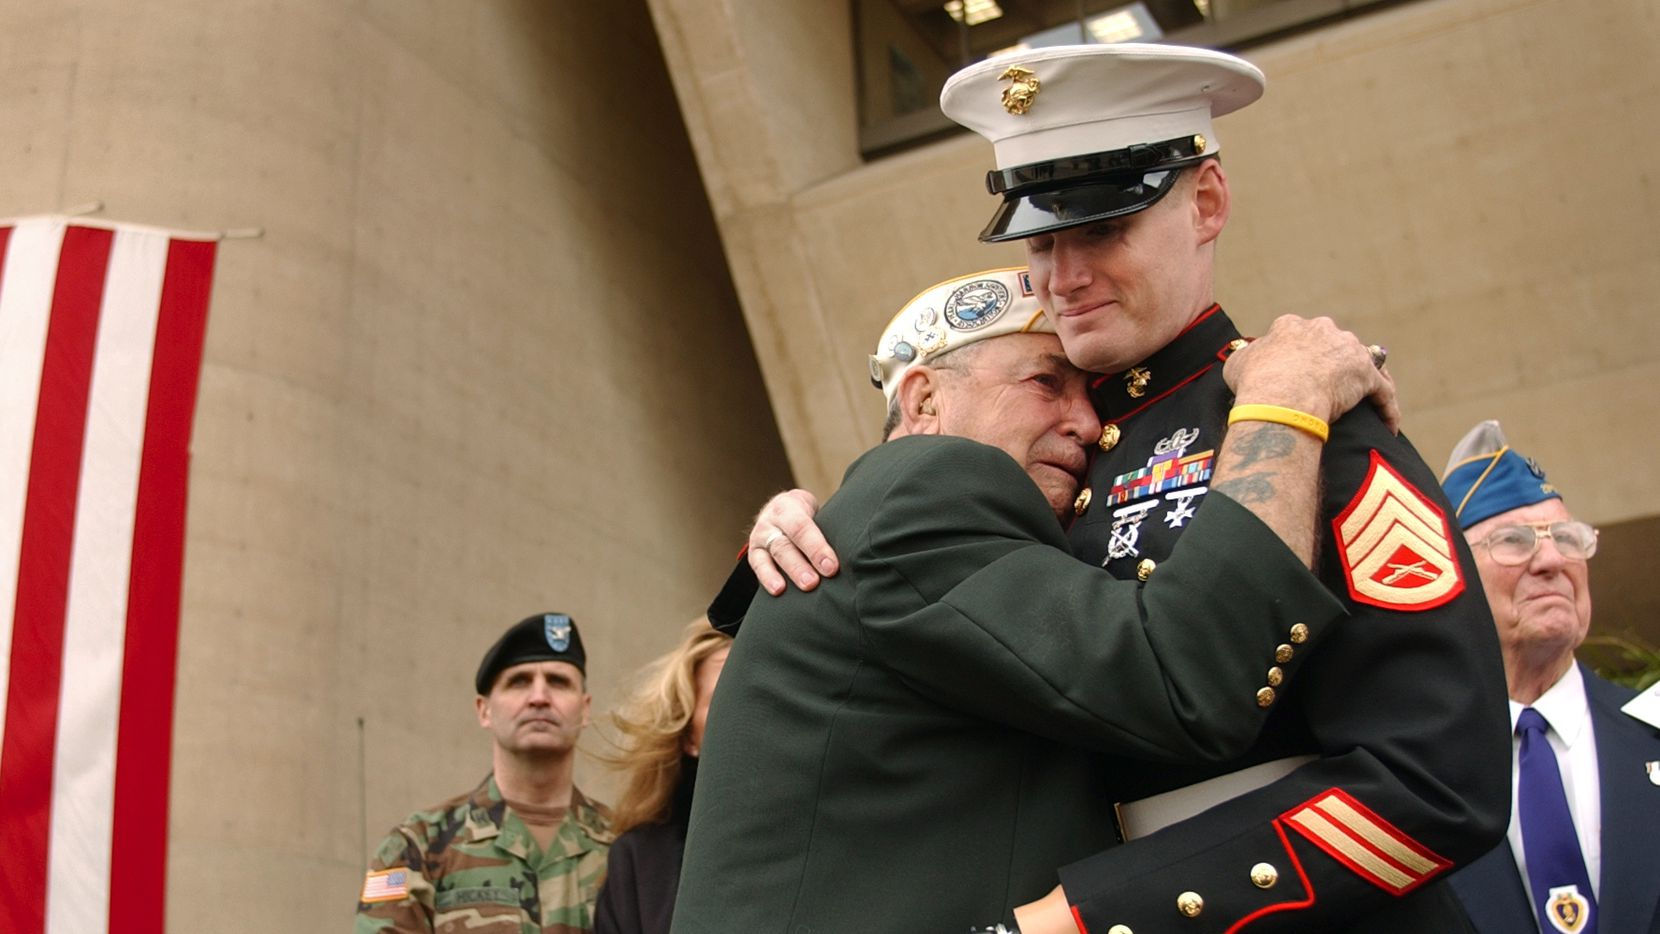 Pearl Harbor survivor Houston James of Dallas was overcome with emotion as he embraced former Marine Sgt. Mark Graunke Jr. of Flower Mound during the 2004 Dallas Veterans Day Commemoration. Photographer Jim Mahoney said it was one of his favorite images from his 32-year career at The Dallas Morning News.